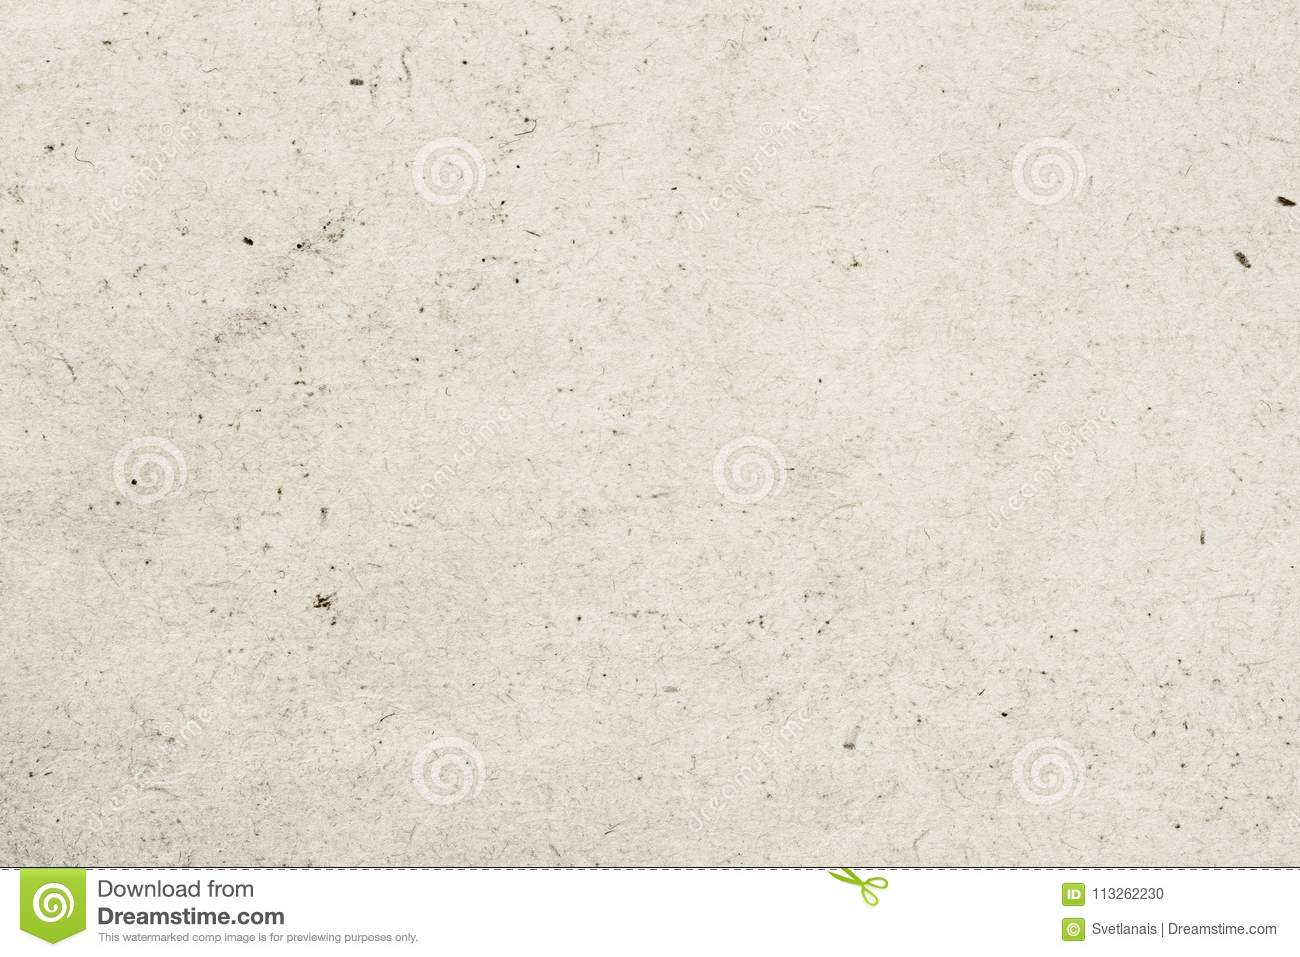 Texture of old organic light cream paper with wrinkles, background for design with copy space text, image. Recyclable